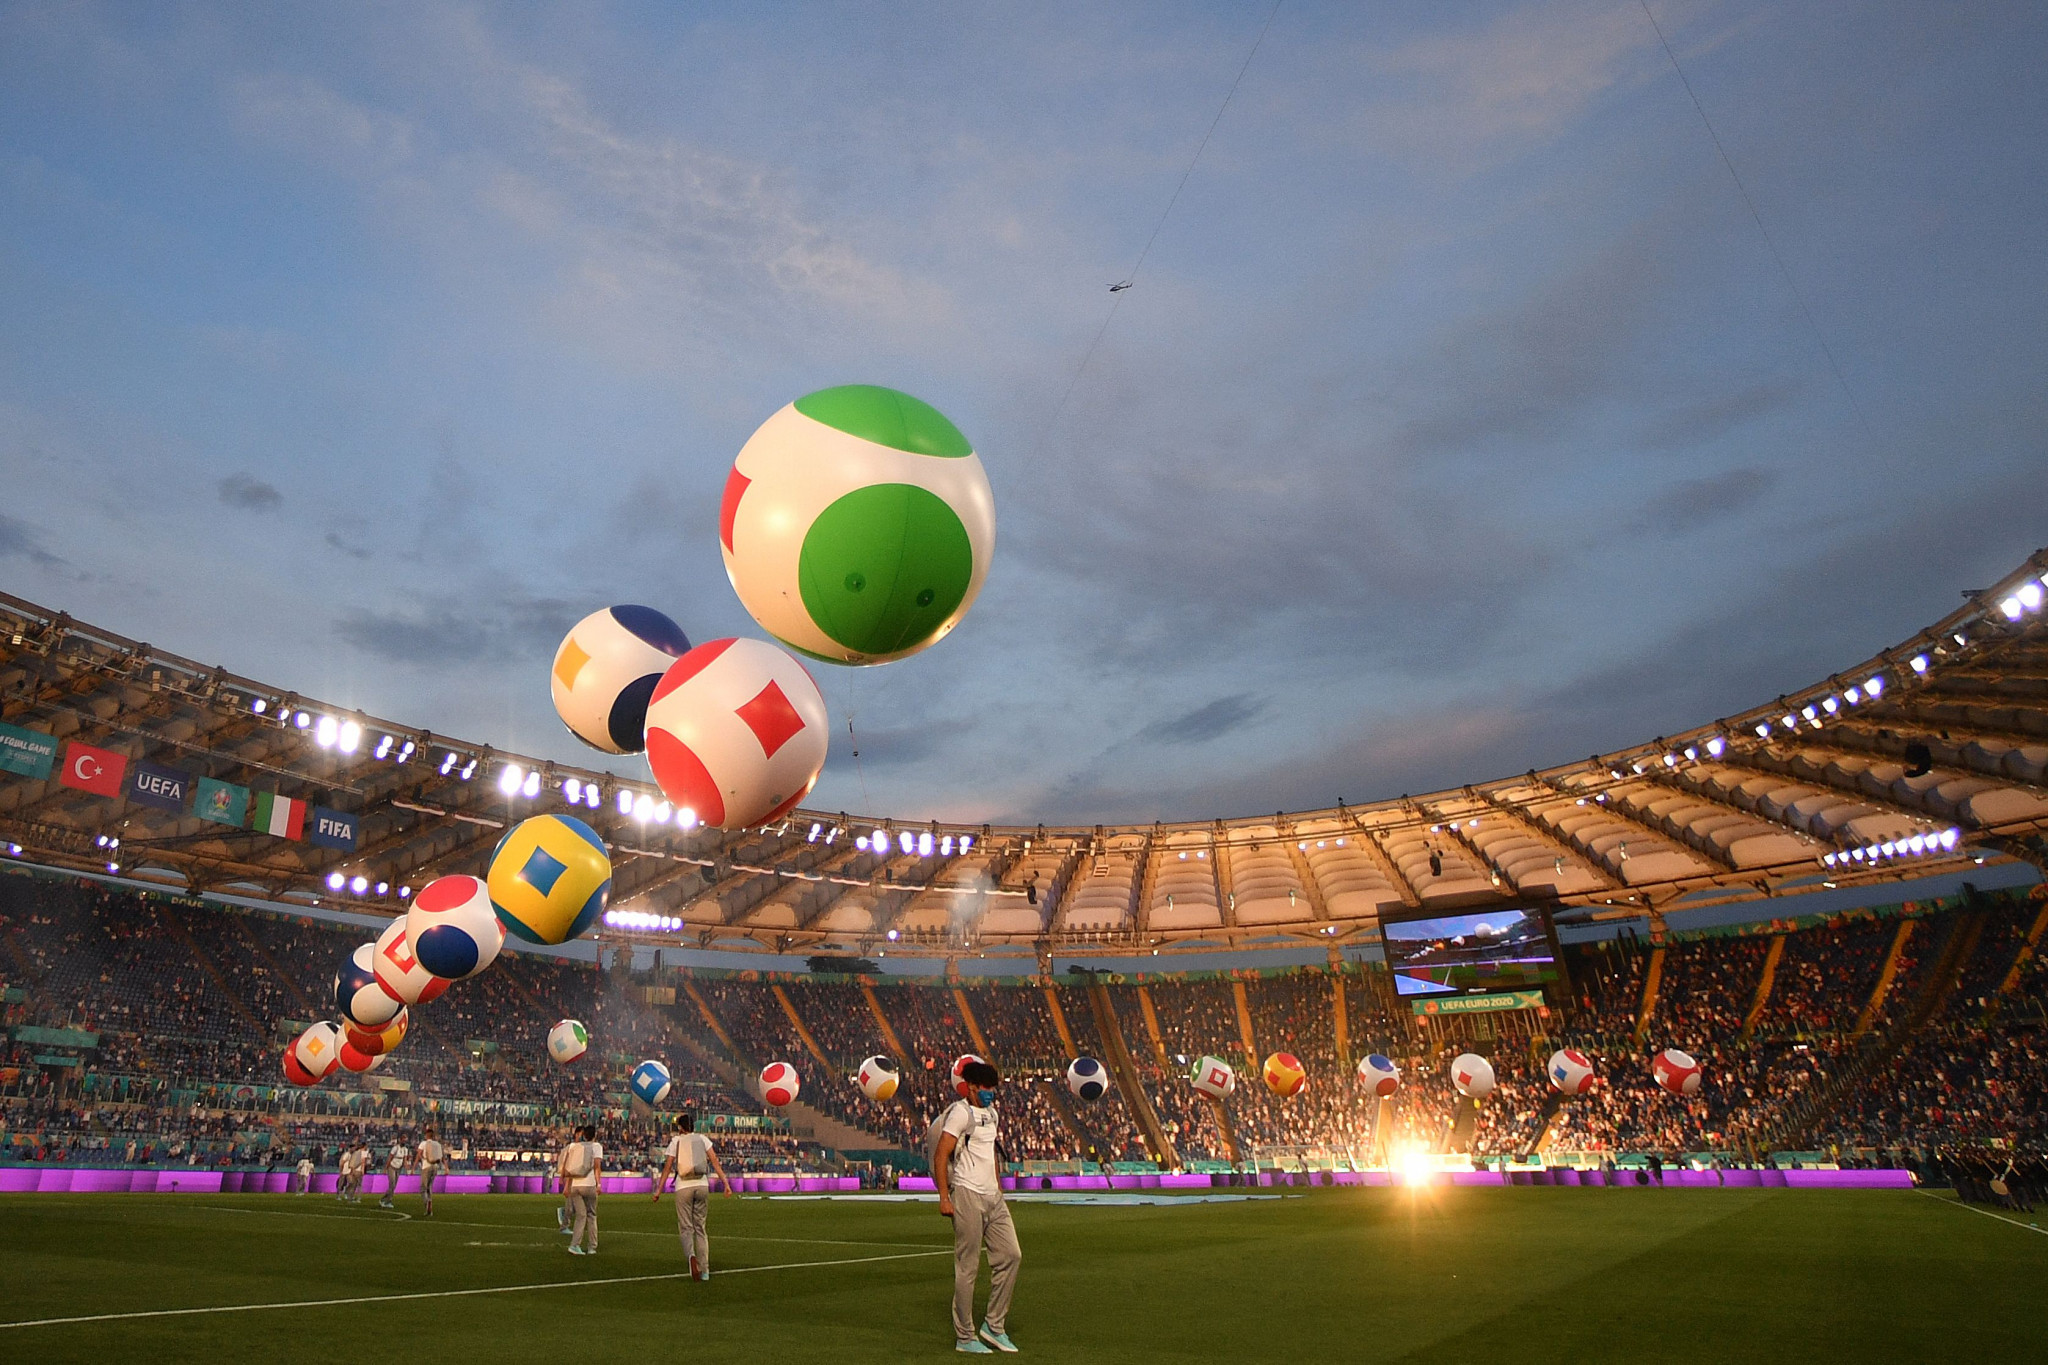 Euro 2020 is off to a good start - and that should give Tokyo 2020 confidence ©Getty Images